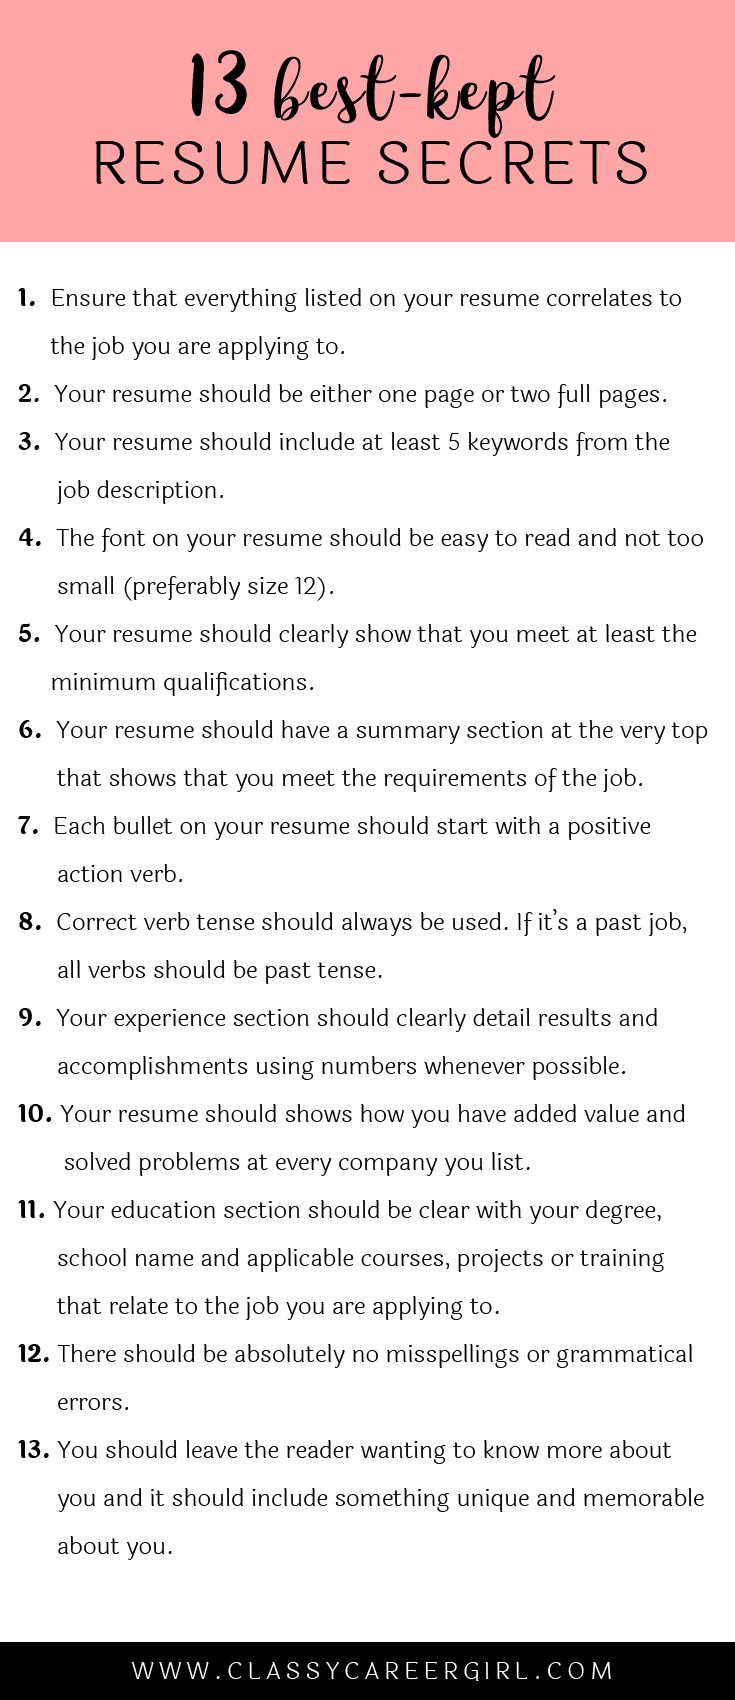 Opposenewapstandardsus  Pleasing  Ideas About Resume On Pinterest  Cv Format Resume Cv And  With Exciting Some Hiring Managers Will Toss Your Resume Out If You Dont Know These  With Captivating Interactive Resume Also Write Resume In Addition Administrative Assistant Resume Objective And Action Verbs Resume As Well As Rn Resume Template Additionally Free Resume Generator From Pinterestcom With Opposenewapstandardsus  Exciting  Ideas About Resume On Pinterest  Cv Format Resume Cv And  With Captivating Some Hiring Managers Will Toss Your Resume Out If You Dont Know These  And Pleasing Interactive Resume Also Write Resume In Addition Administrative Assistant Resume Objective From Pinterestcom